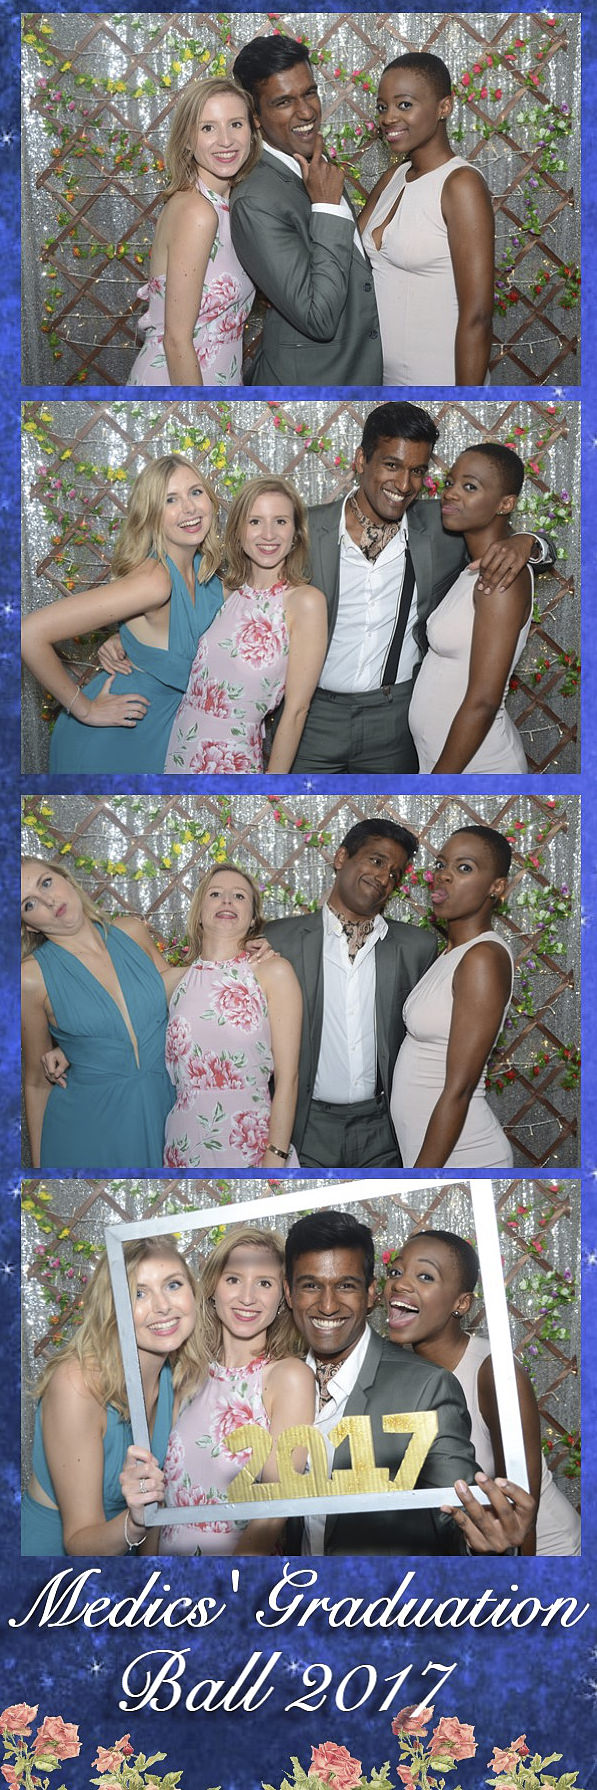 Medics Graduation Ball 2017 Medics Ball 2017 - TheSelfieLab.co.ukDS204101.jpg